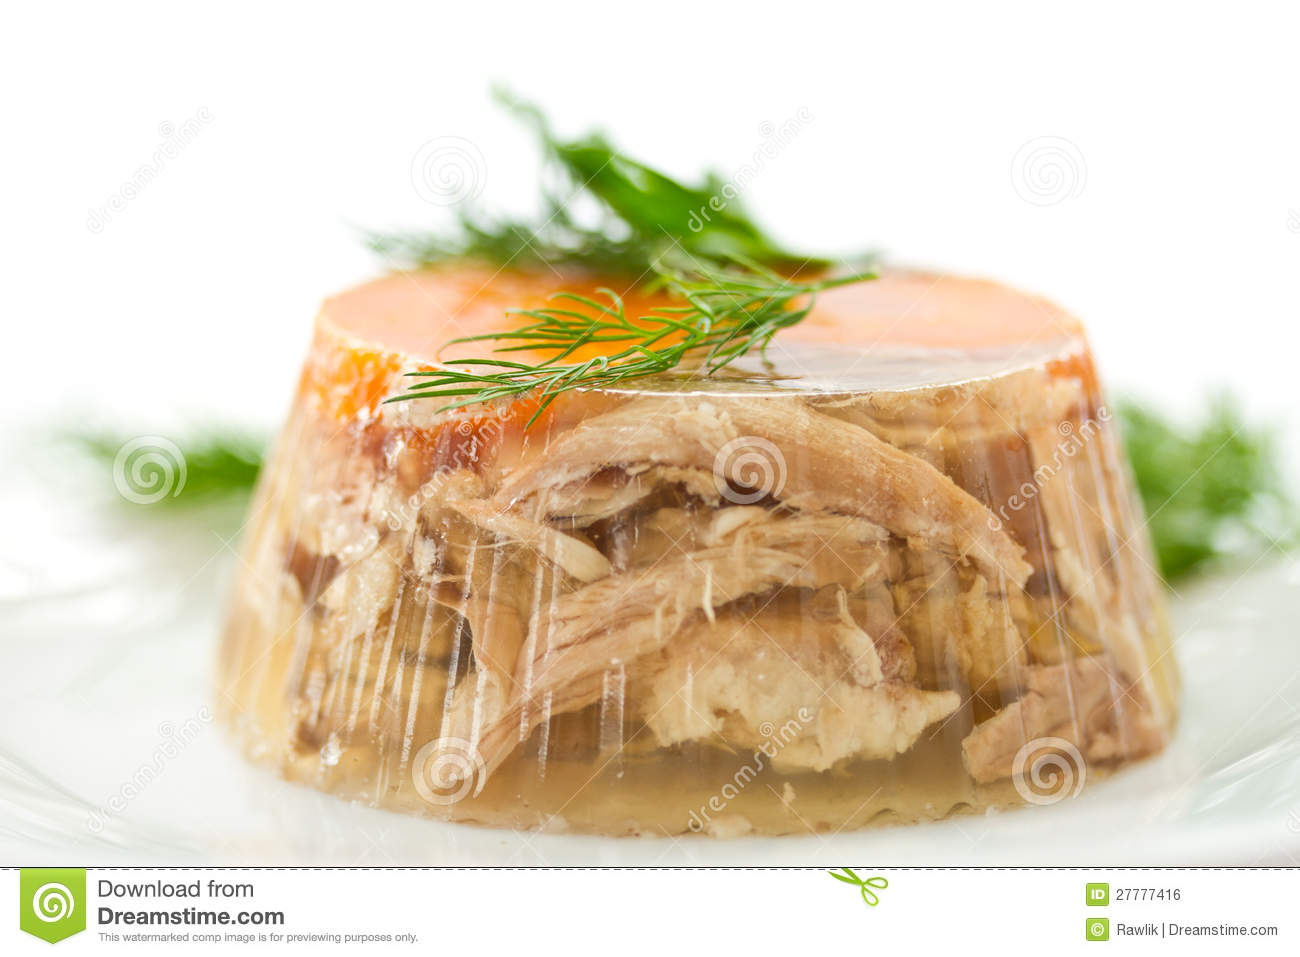 Meat Aspic Royalty Free Stock Image - Image: 27777416